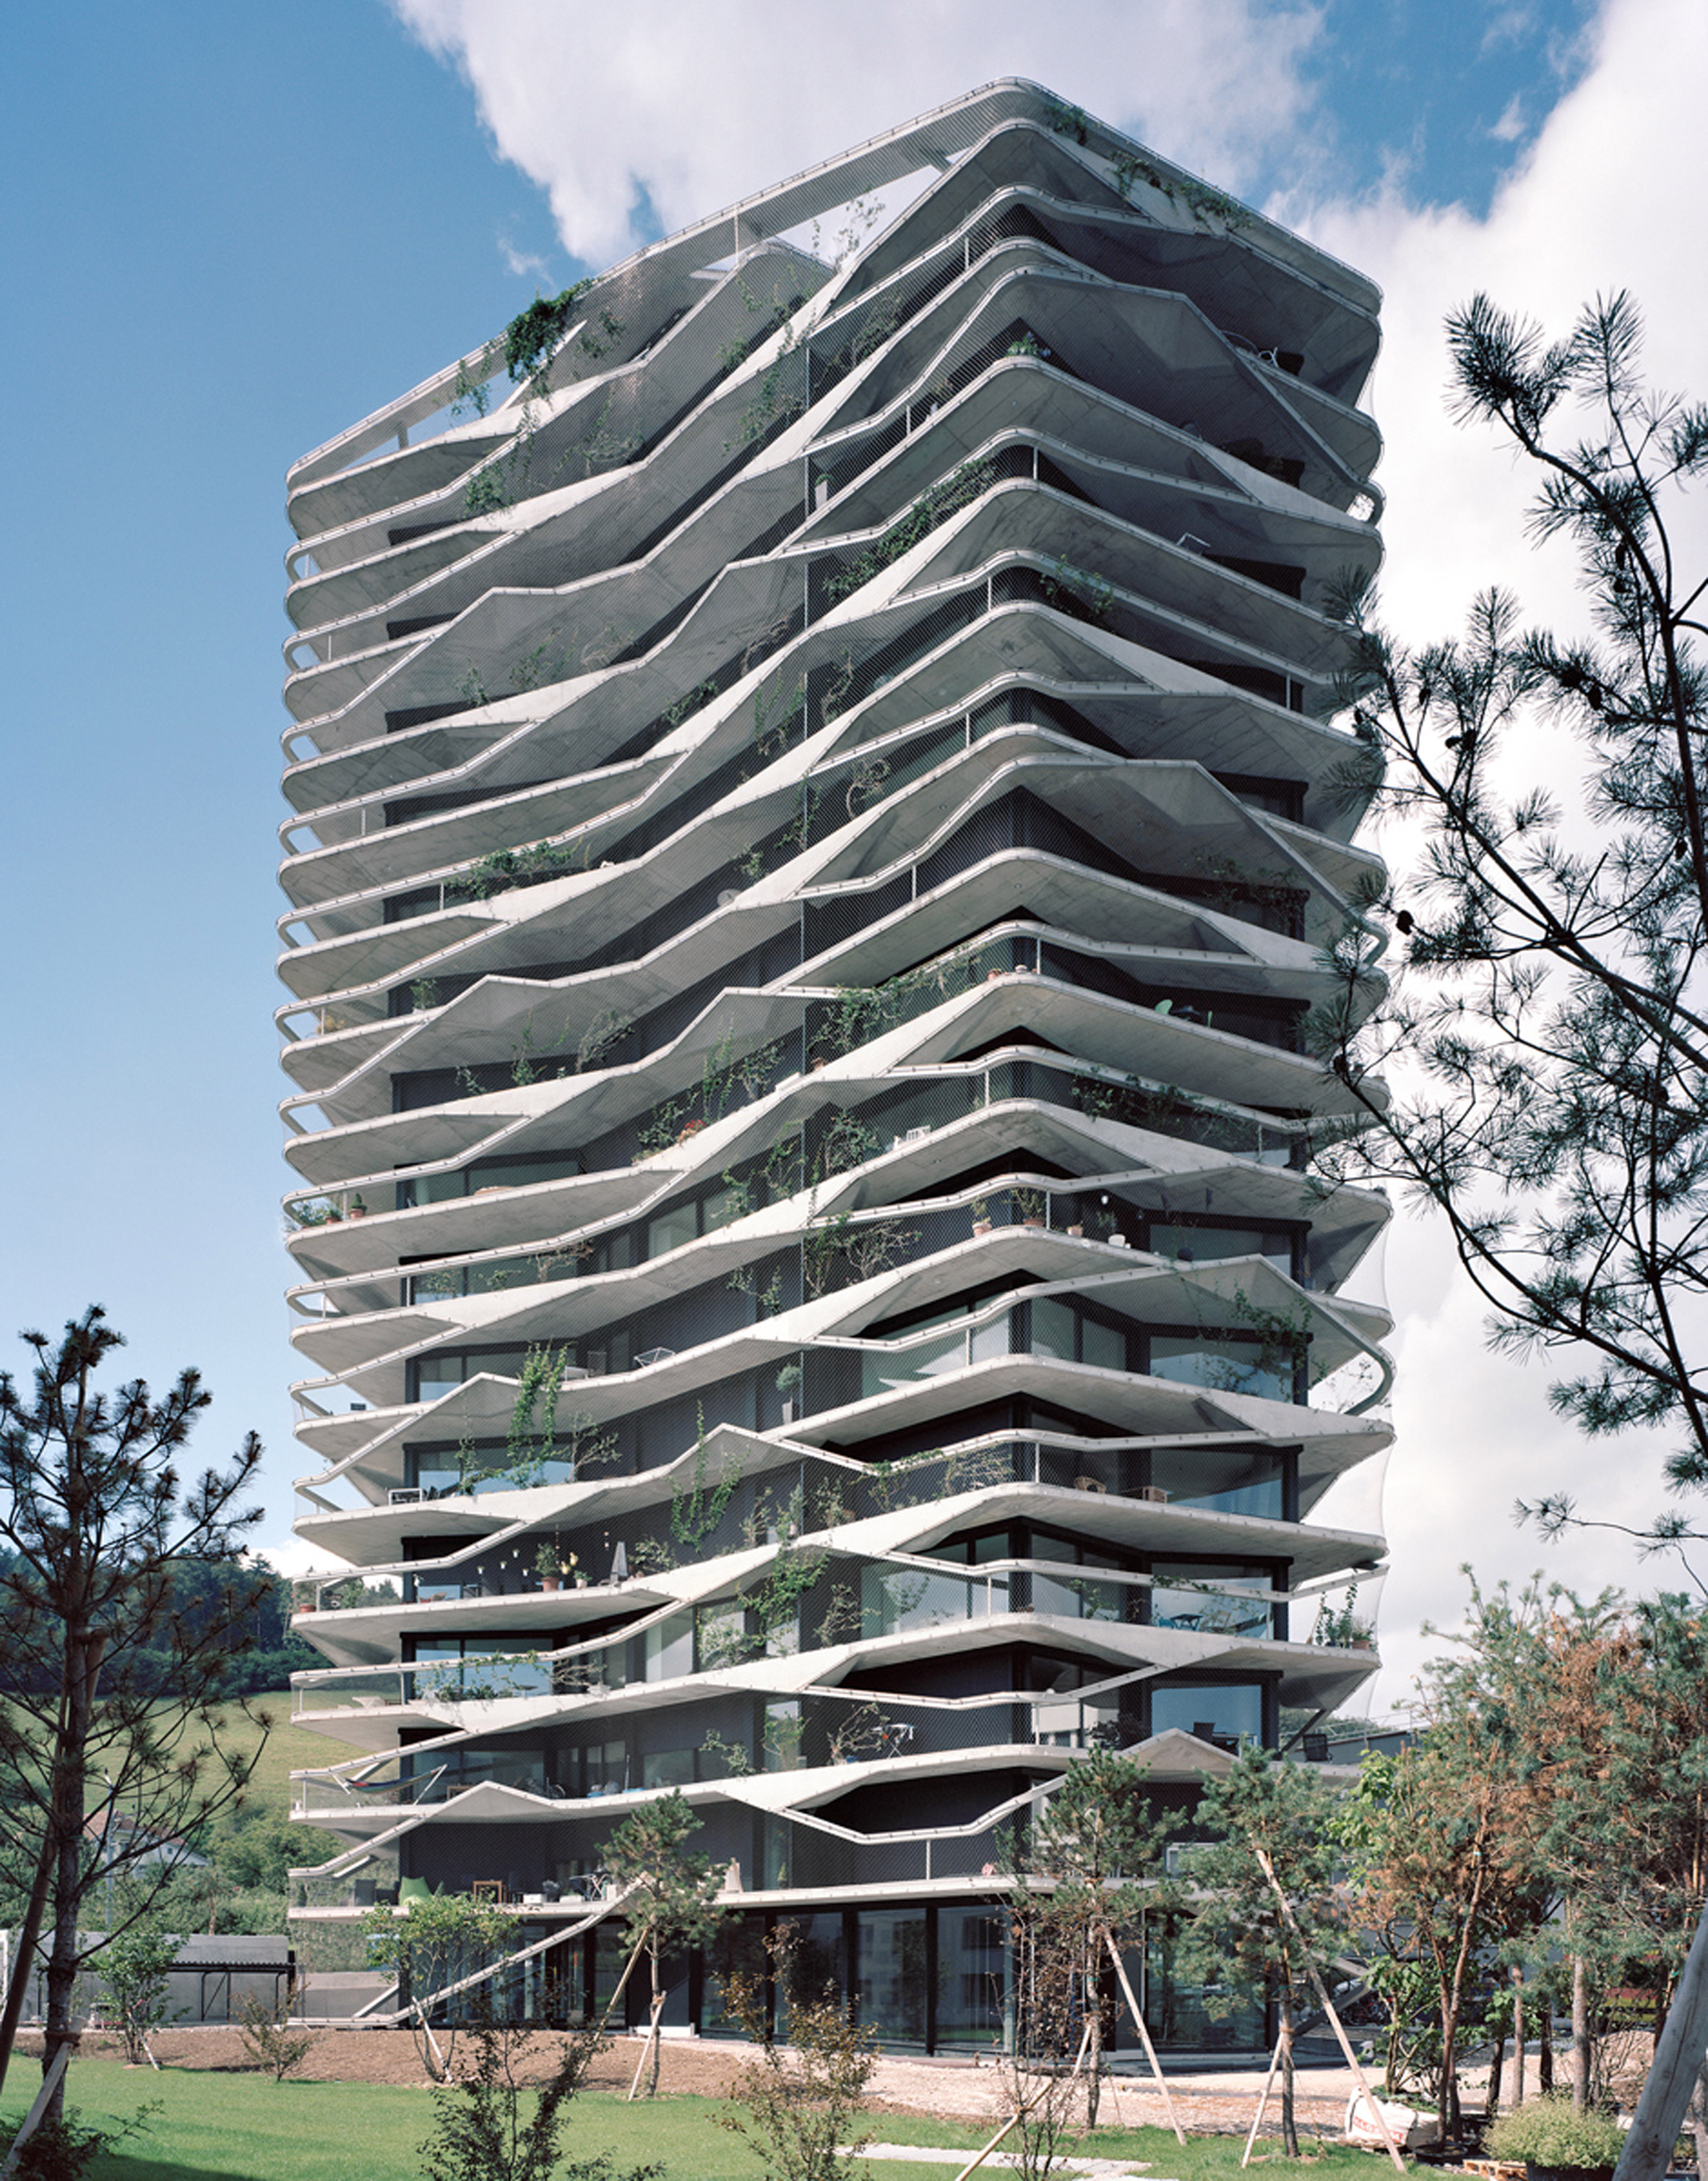 Climbing plants and asymmetric balconies surround Buchner Bründler's Garden Tower